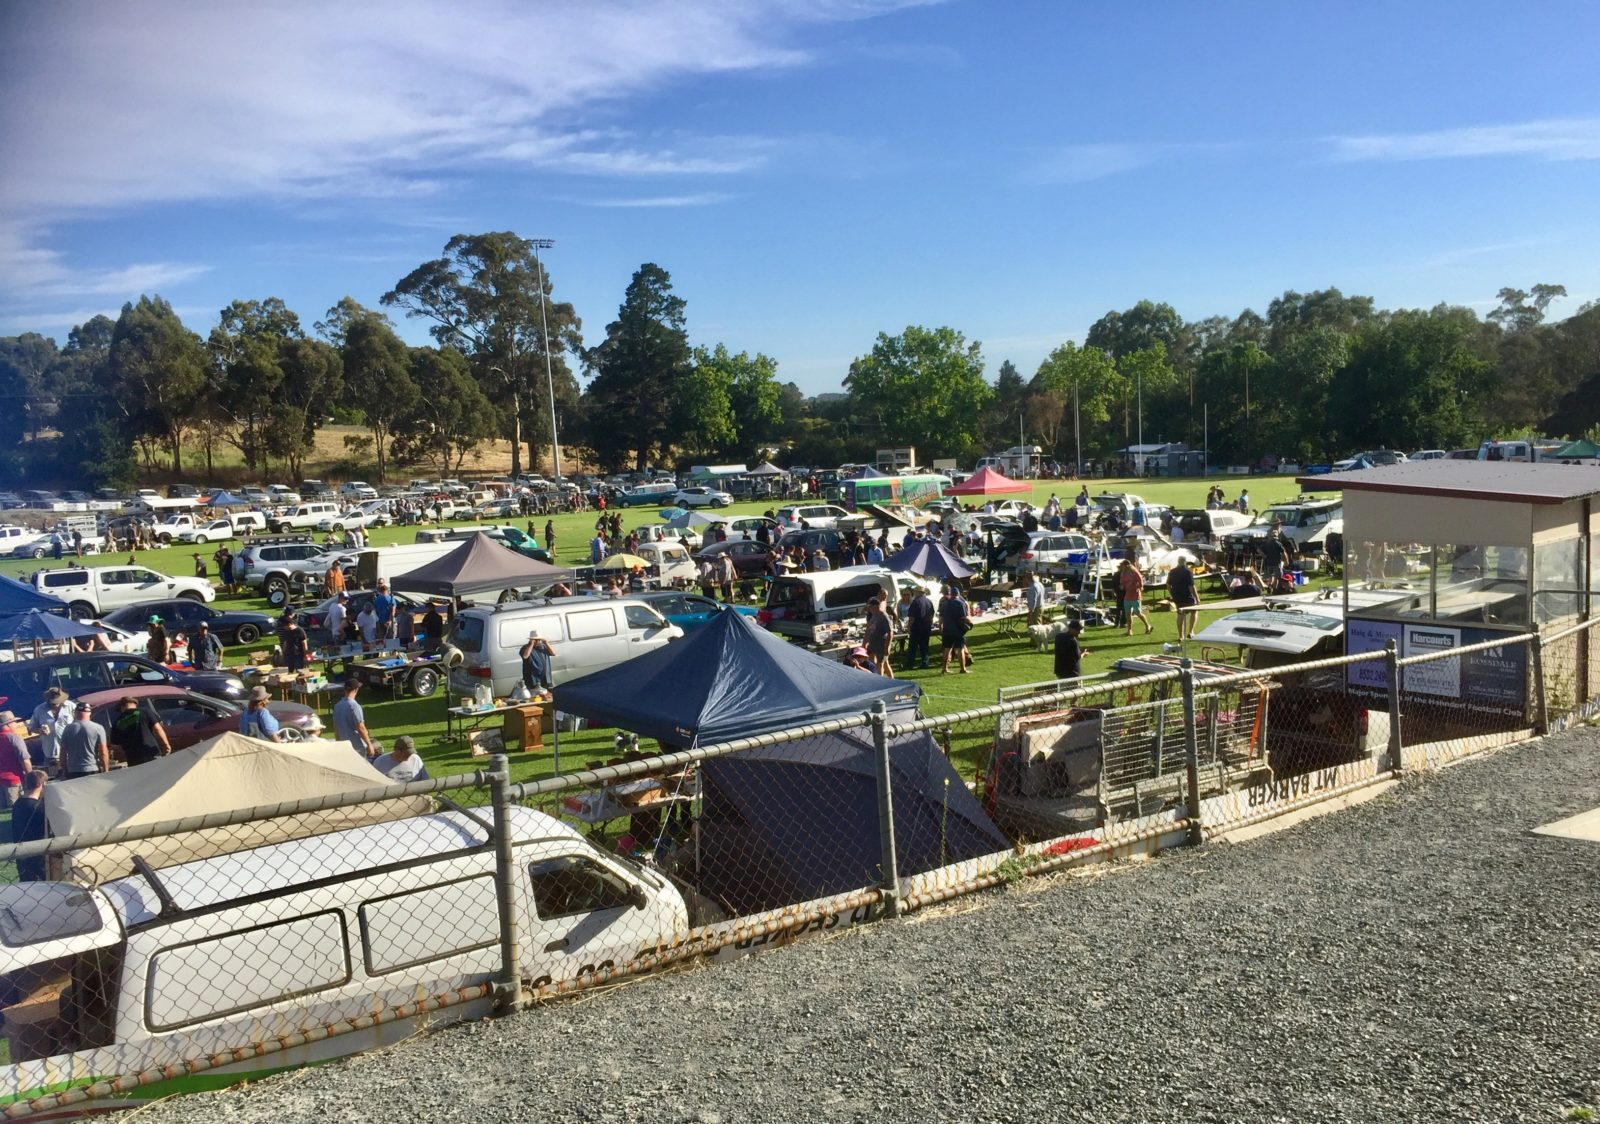 Lions Swap Meet, Hahndorf Oval 2018